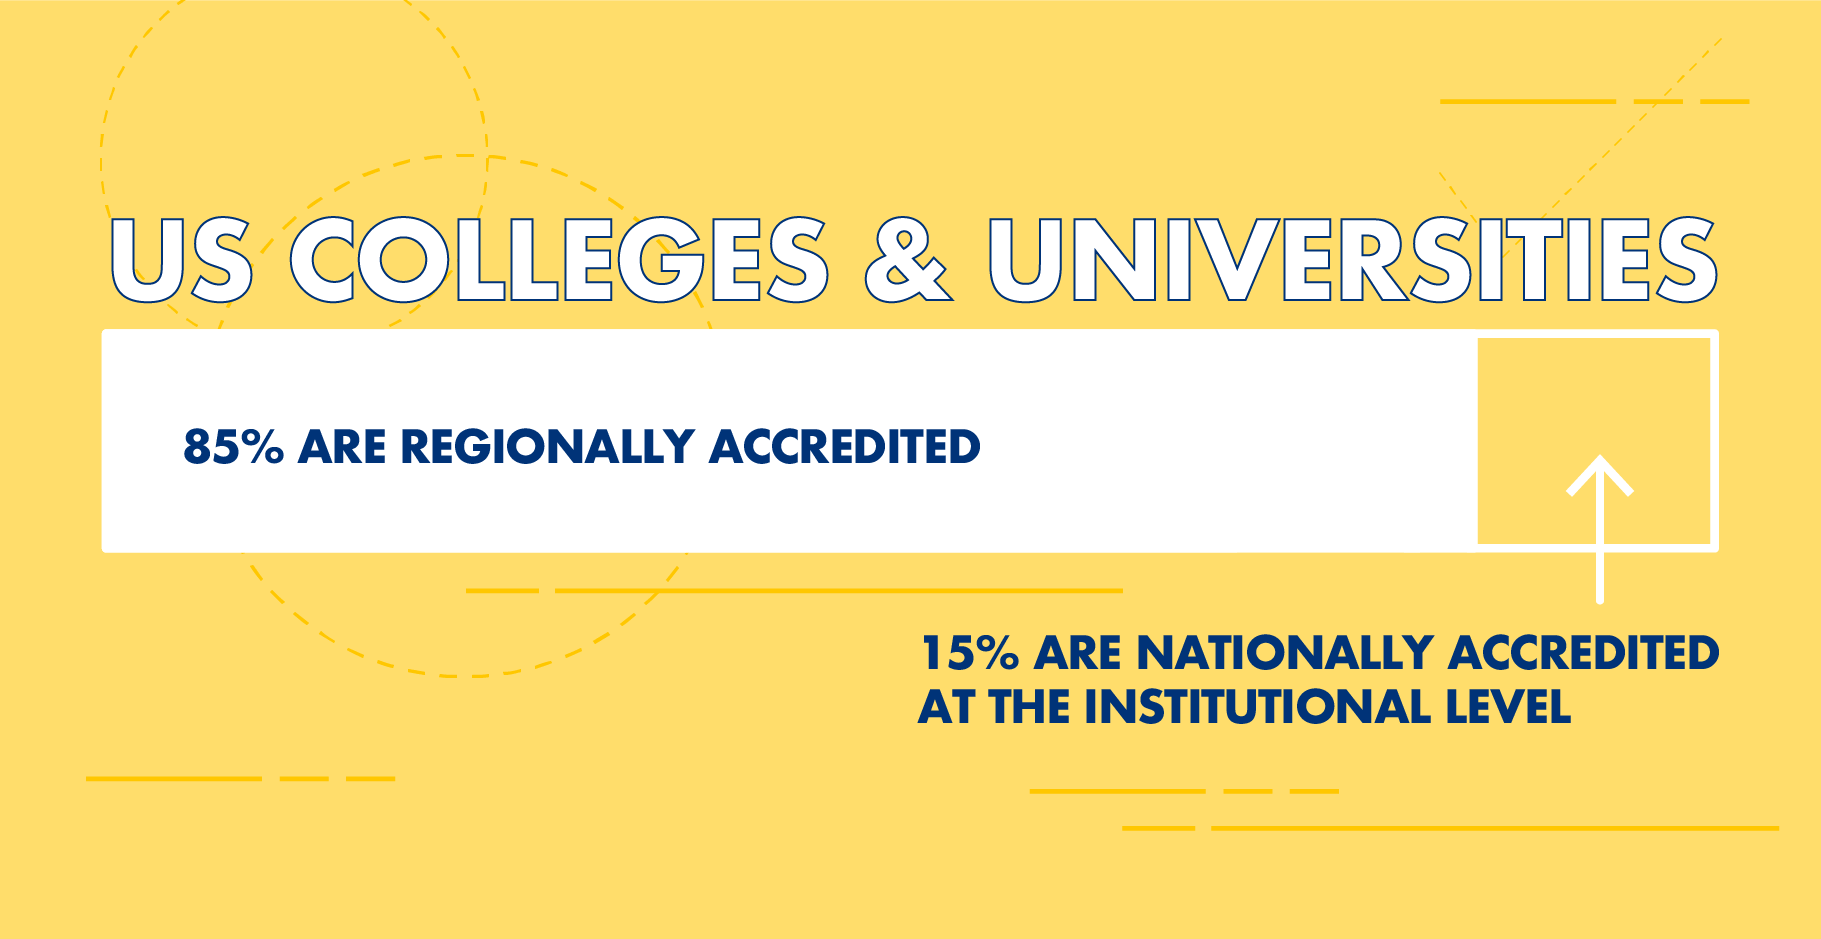 85% of US colleges and universities are regionally accredited